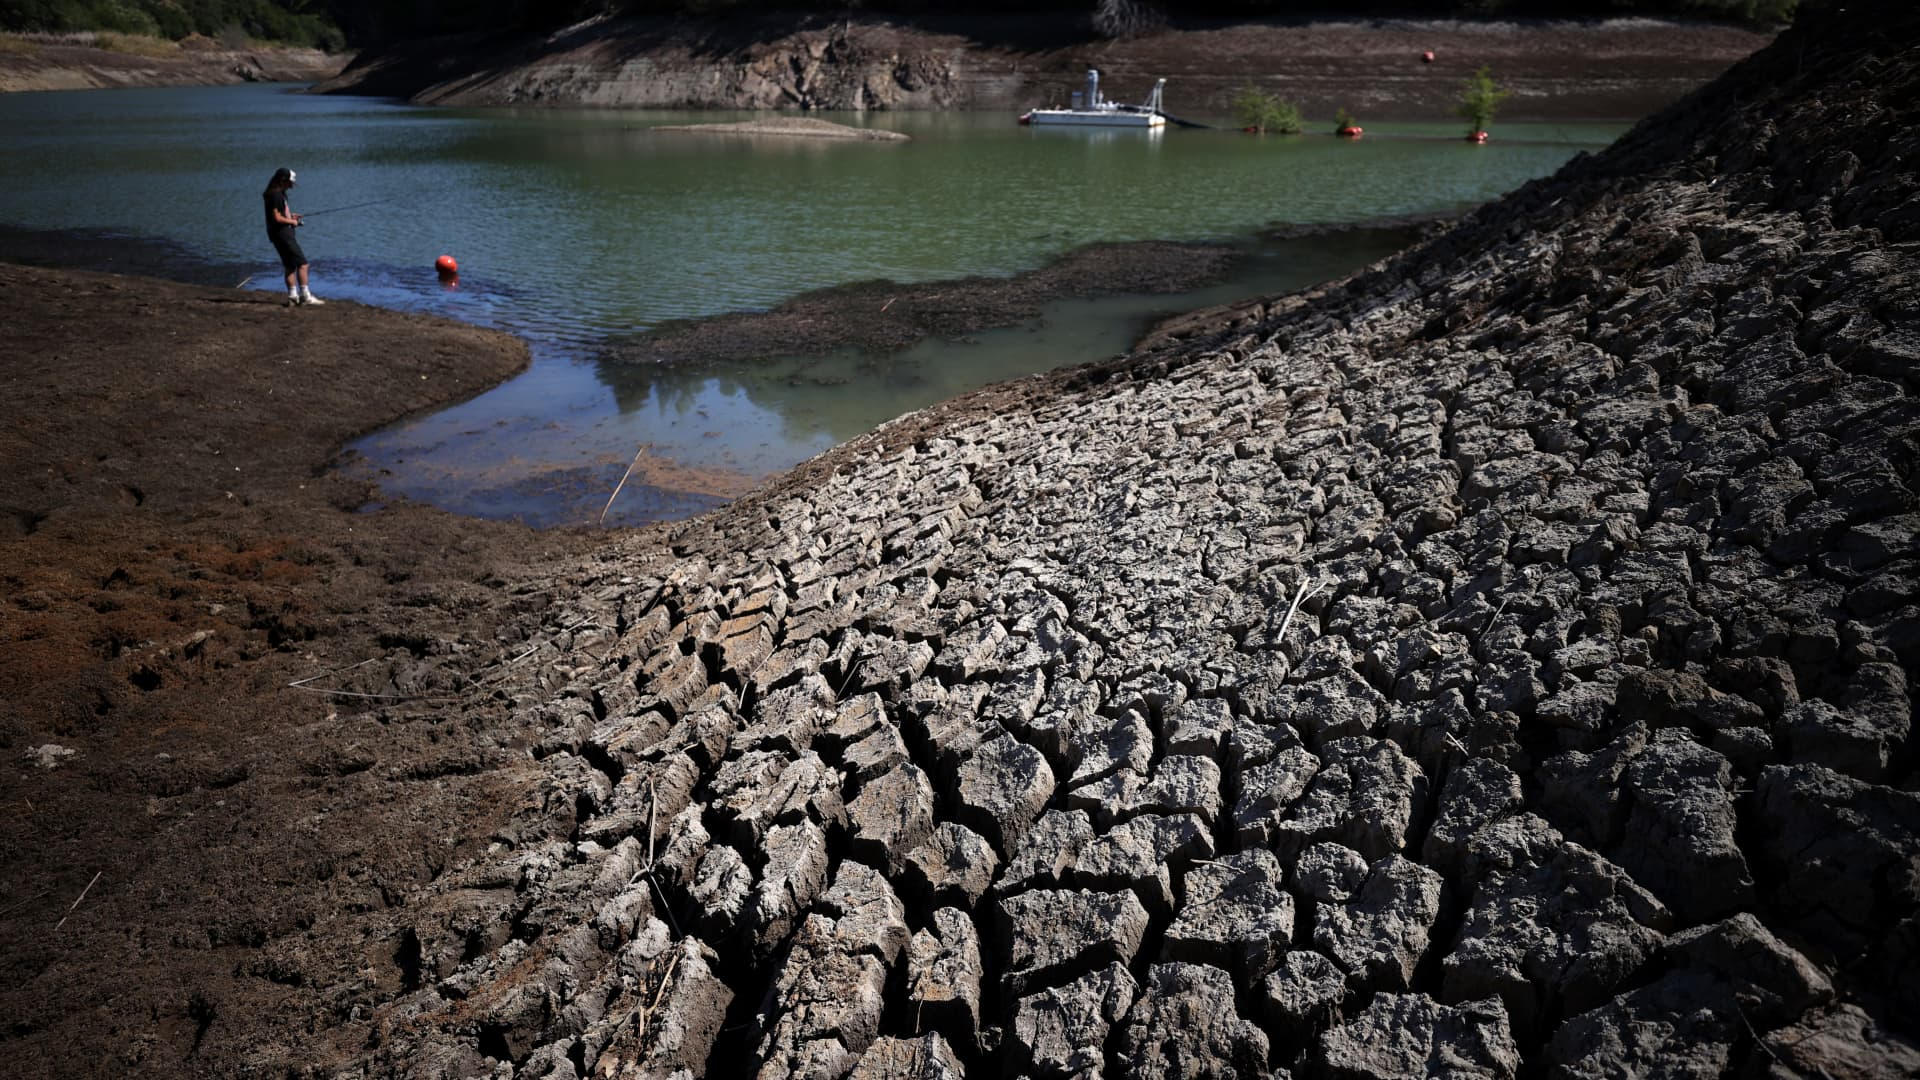 Dry cracked earth is visible along the banks of Phoenix Lake on April 21, 2021 in Ross, California.